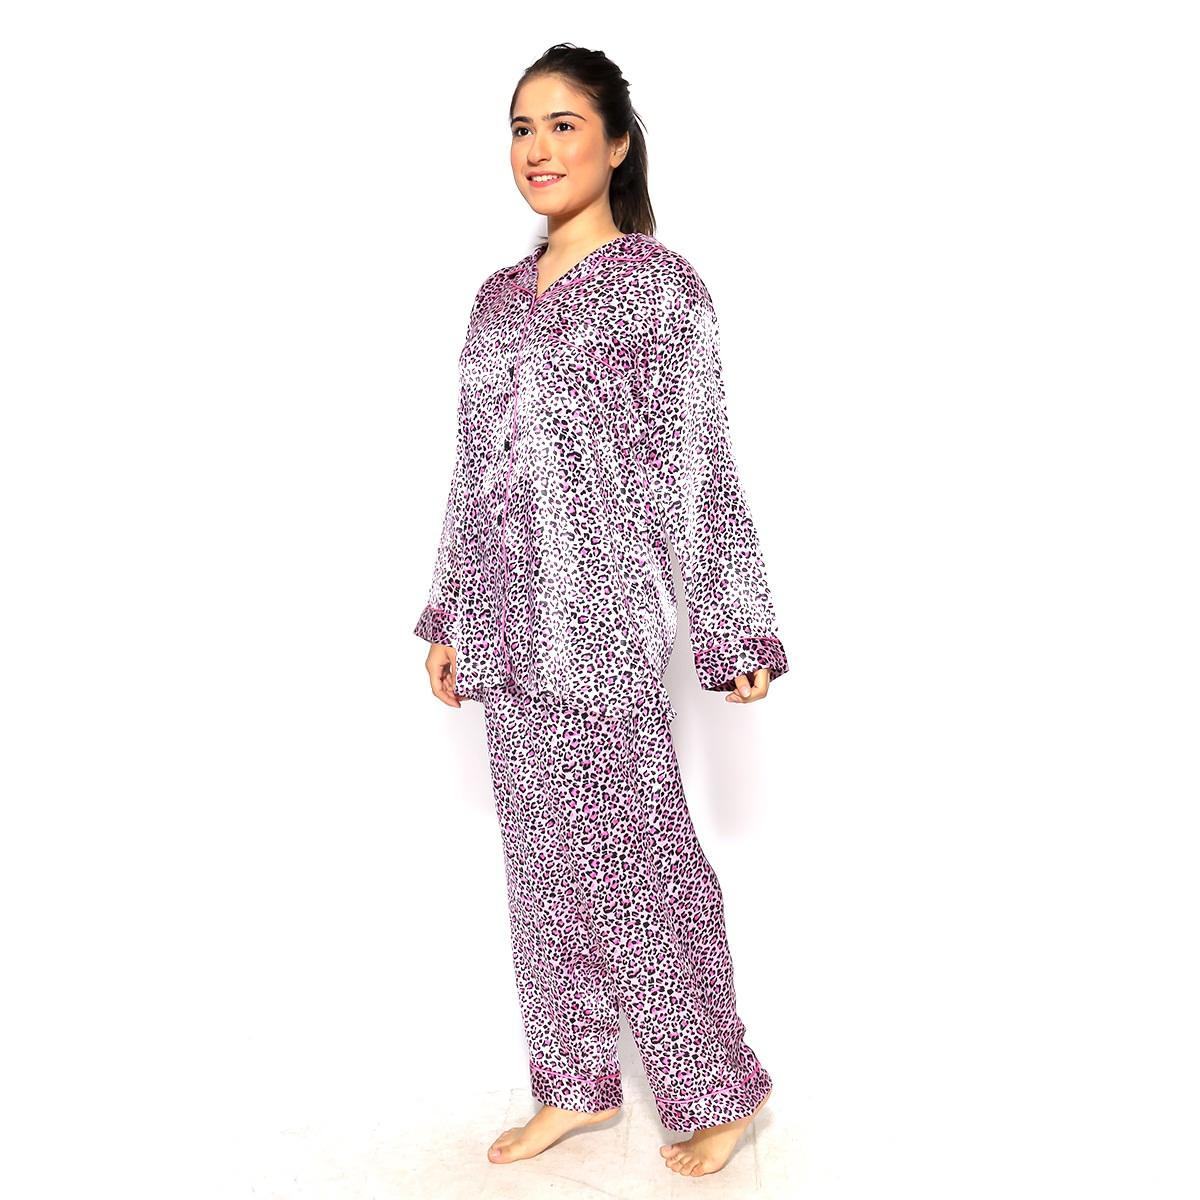 Valerie silky comfy satin Everynight styles to holiday night prints Pajama set comfortable tailored Sleepwear